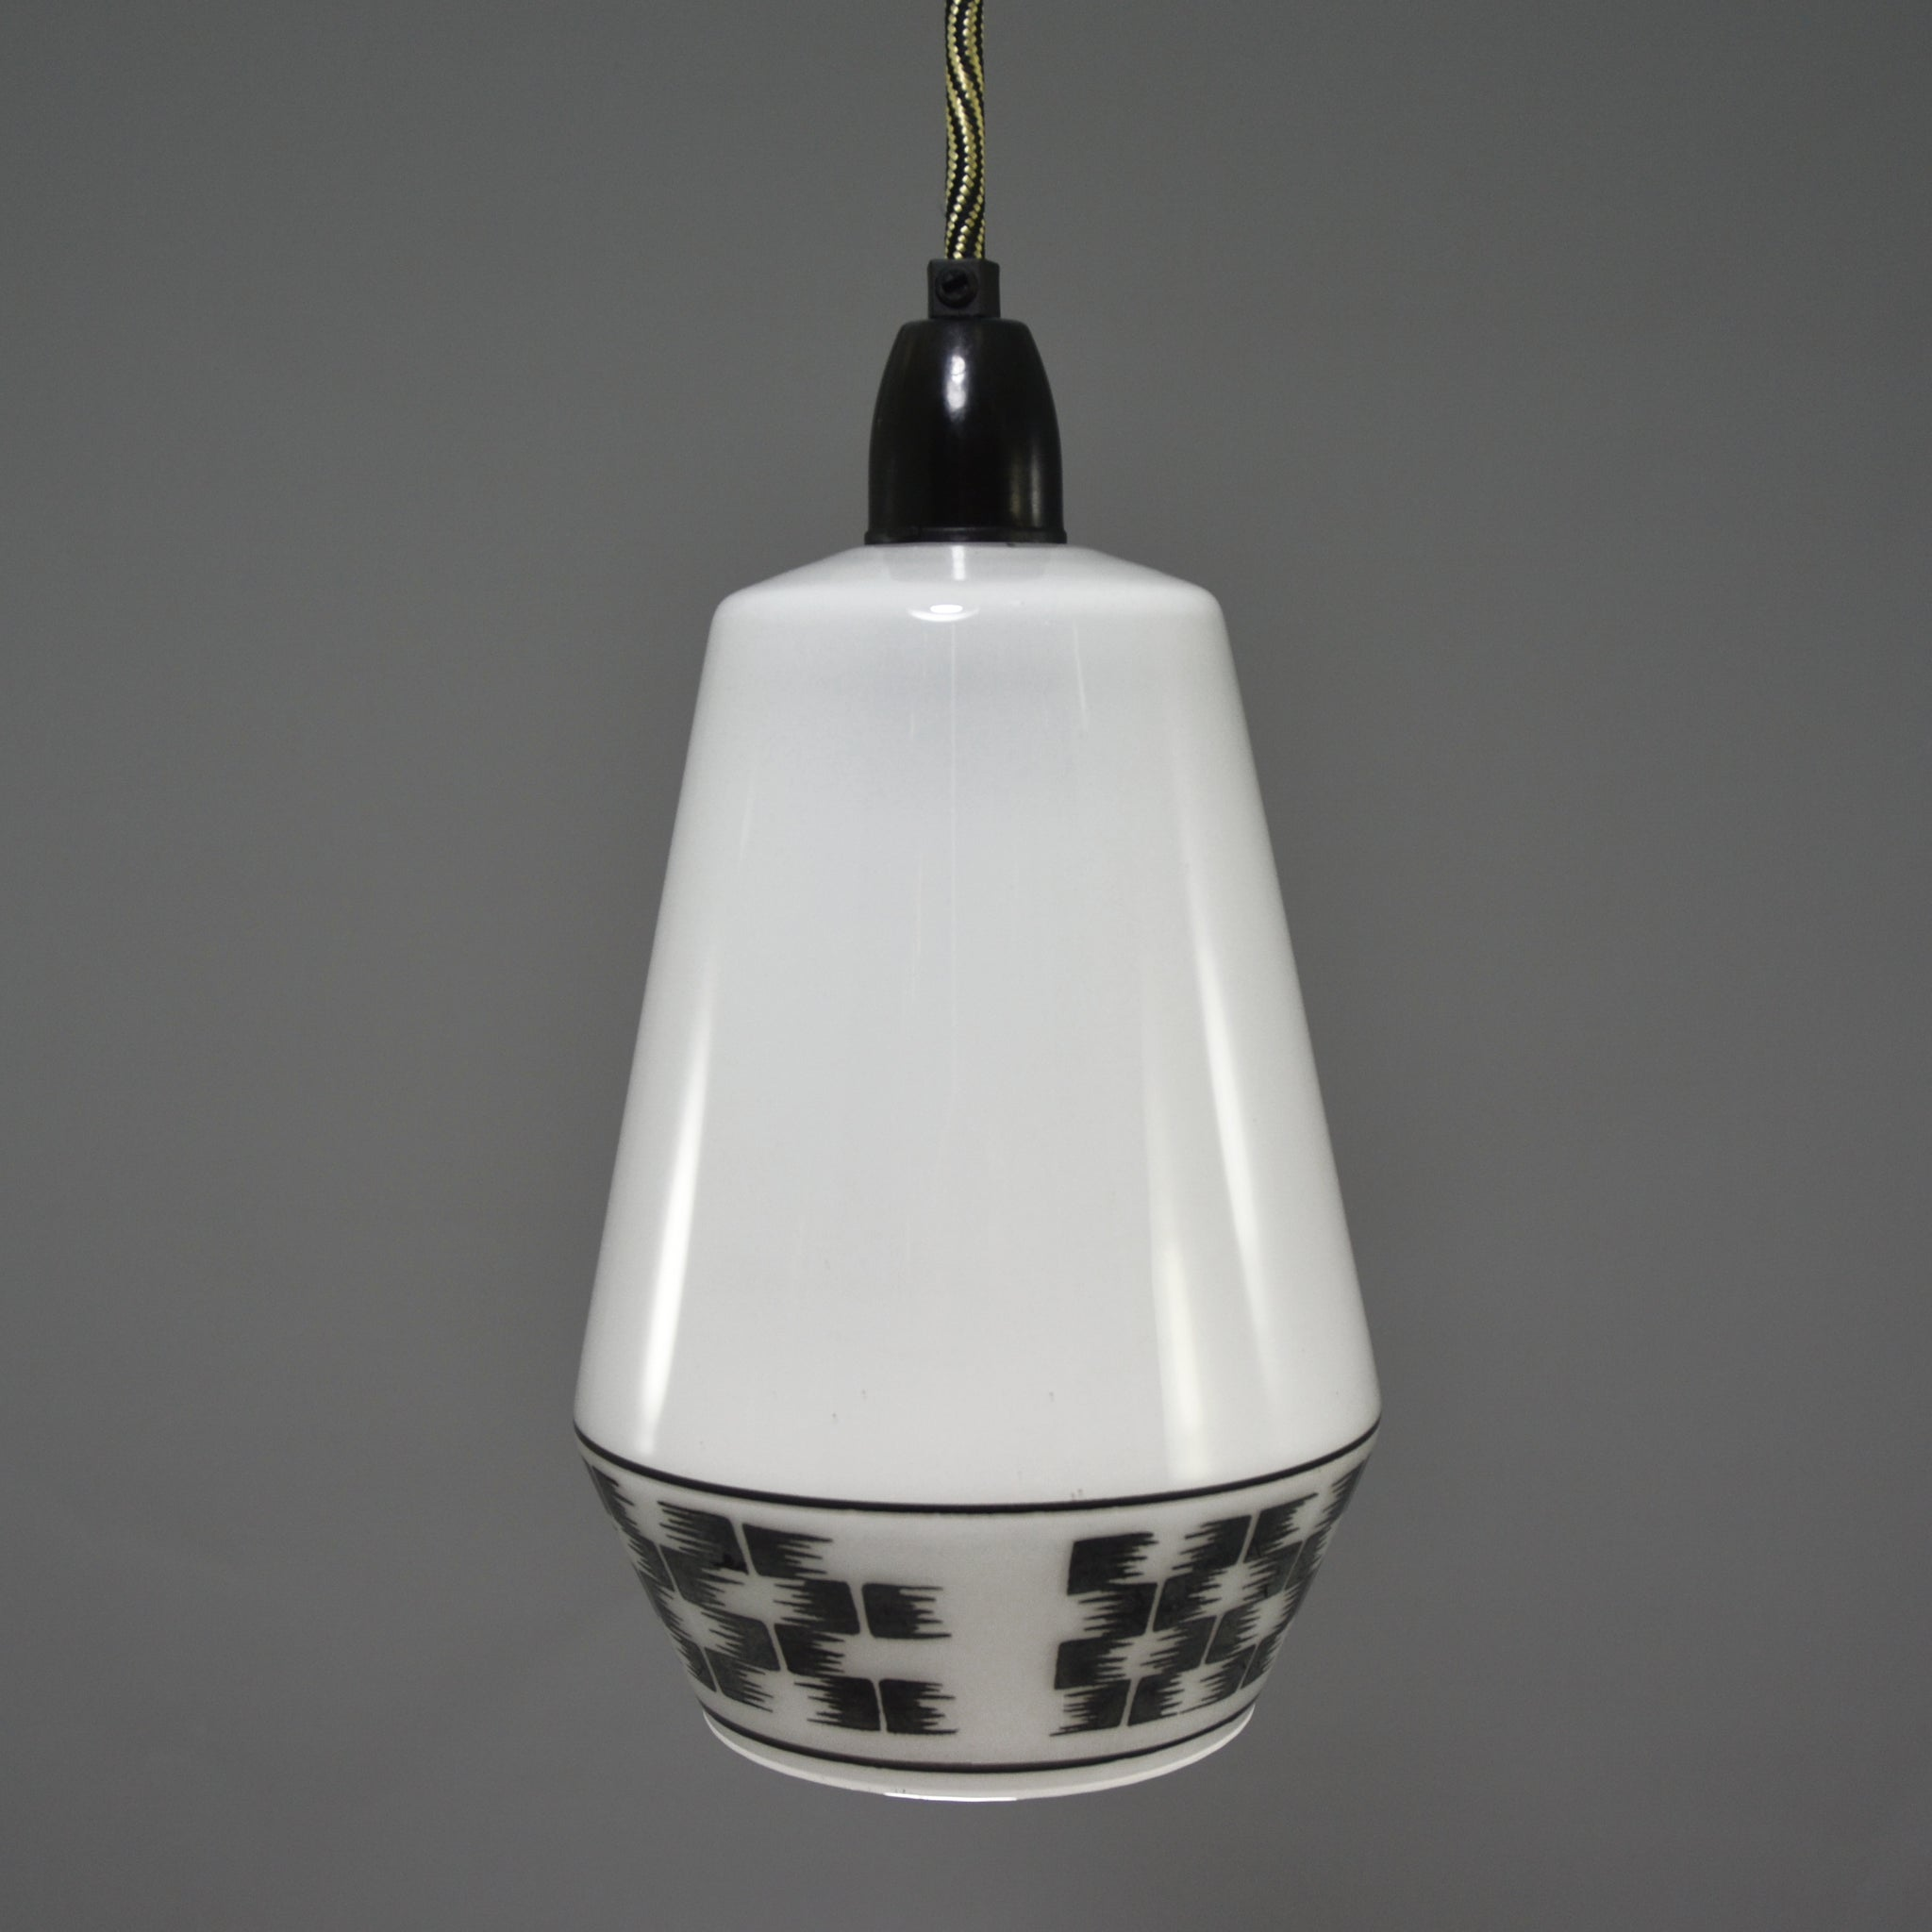 Mid Century Modern 1960s white glass pendant light with with black checkered motif